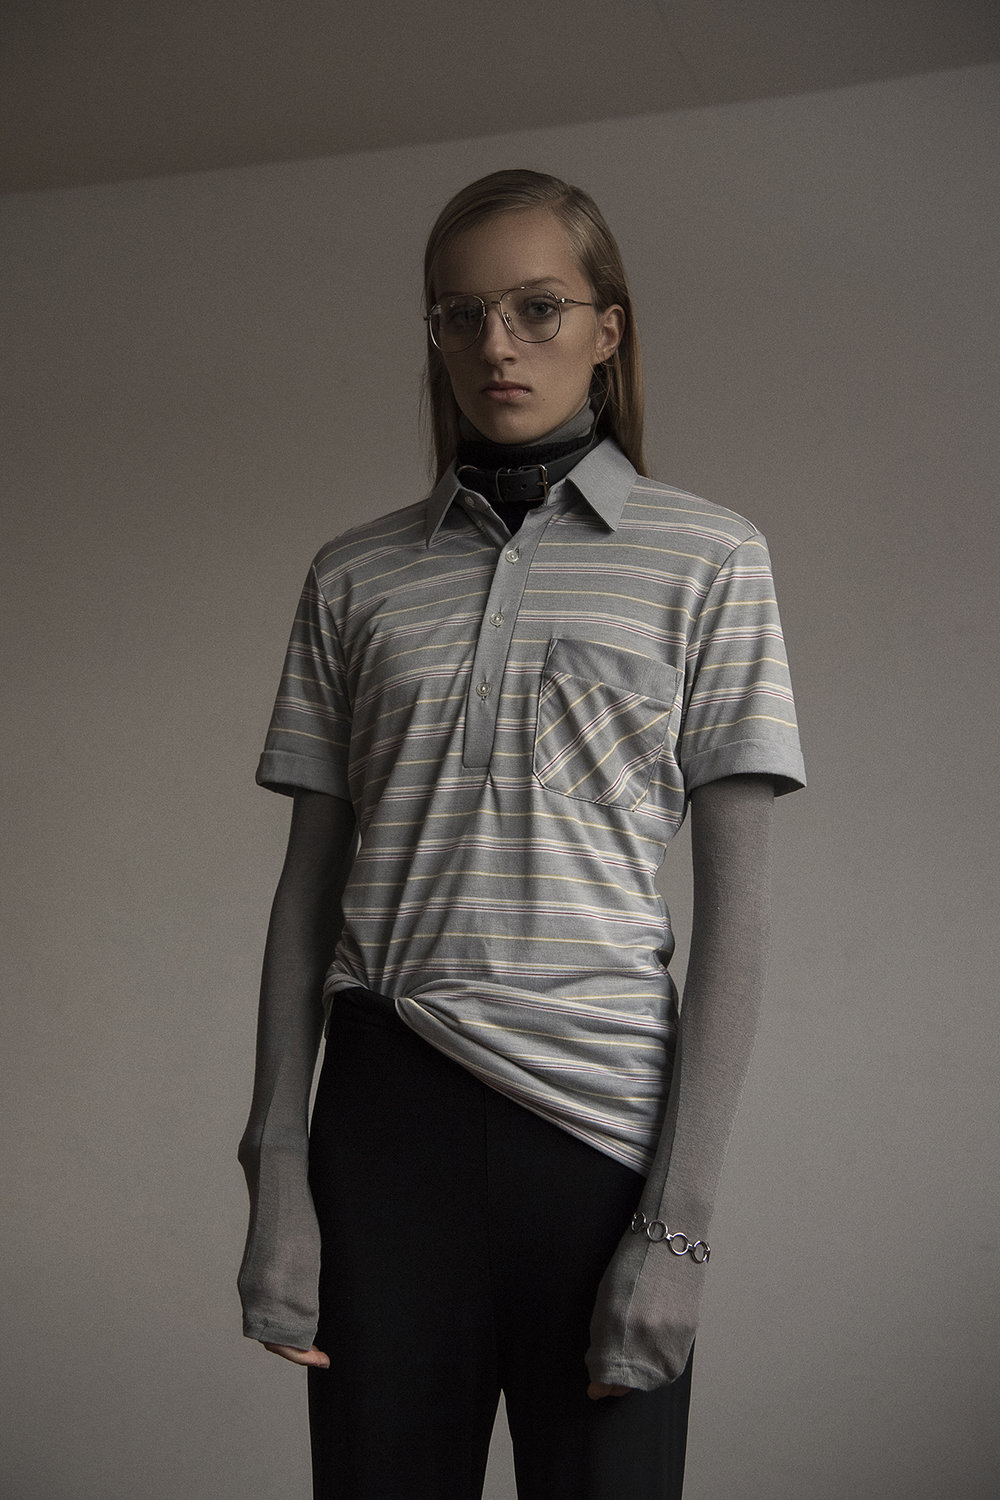 stripe shirt  the market cartel  trousers  stylist own  bracelet  justine clenquet